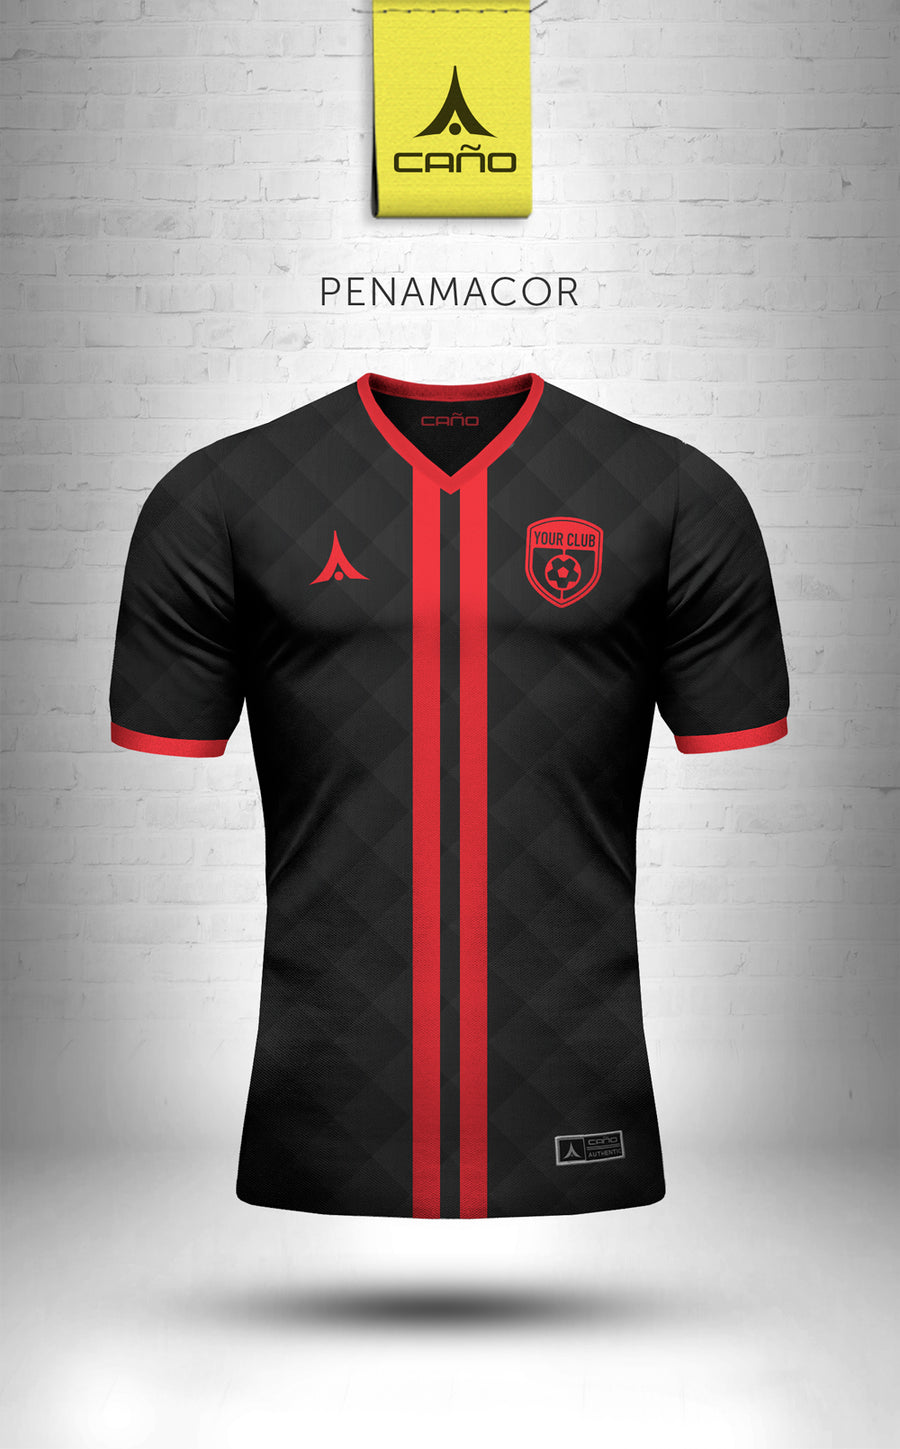 Penamacor in black/red